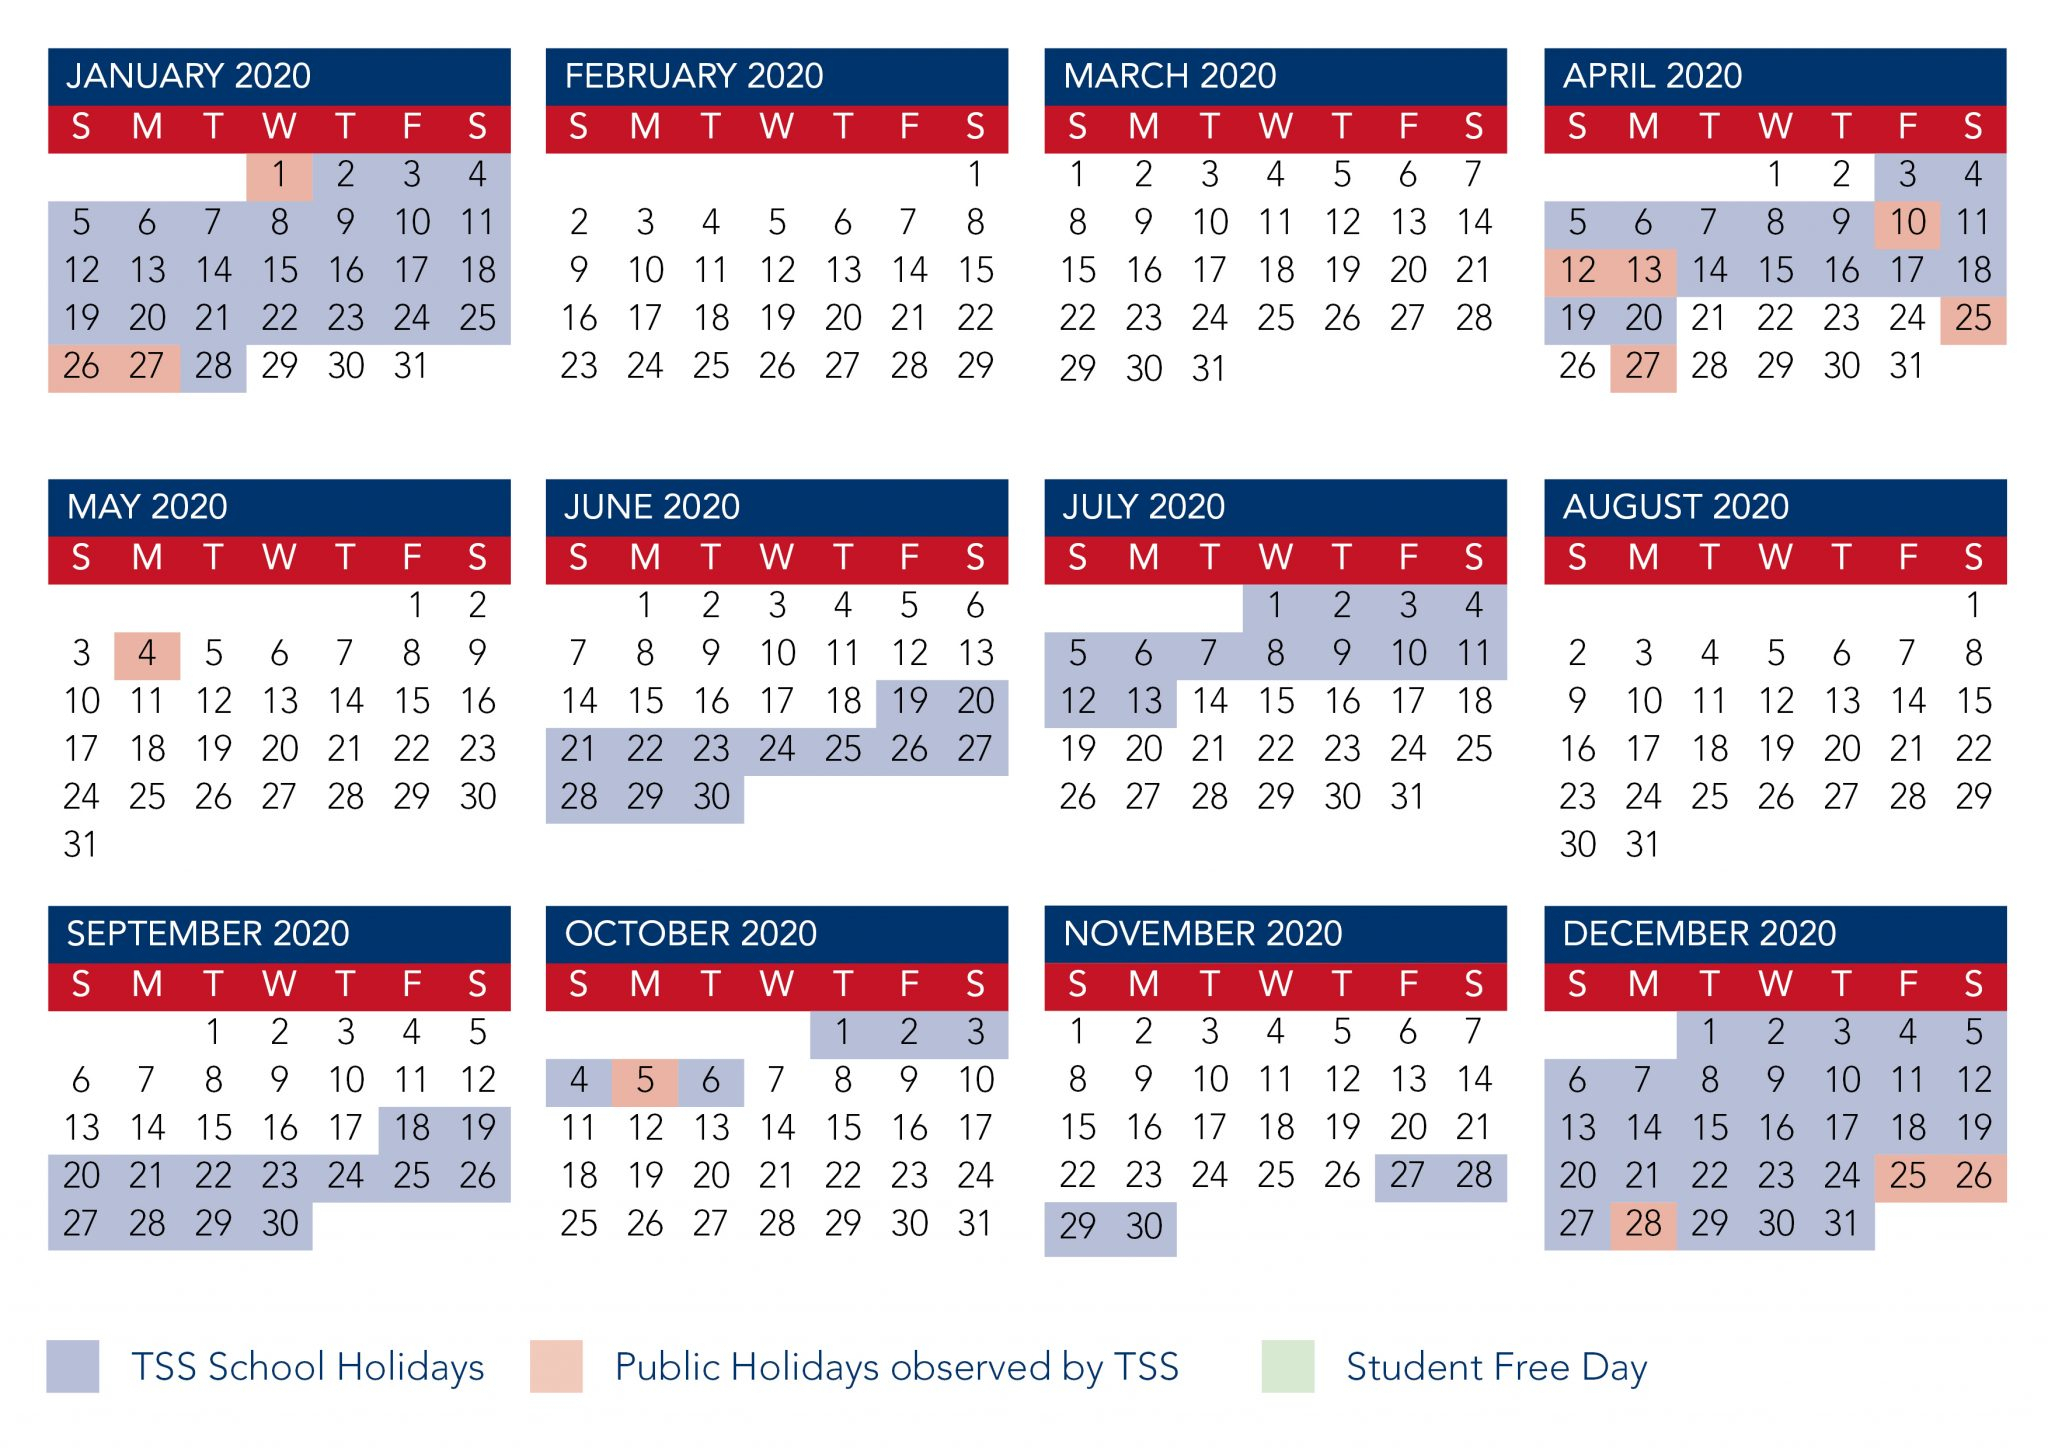 2020 School Calendar Queensland State Schools | Calendar throughout Google 2020 School Calendar Queensland State Shools